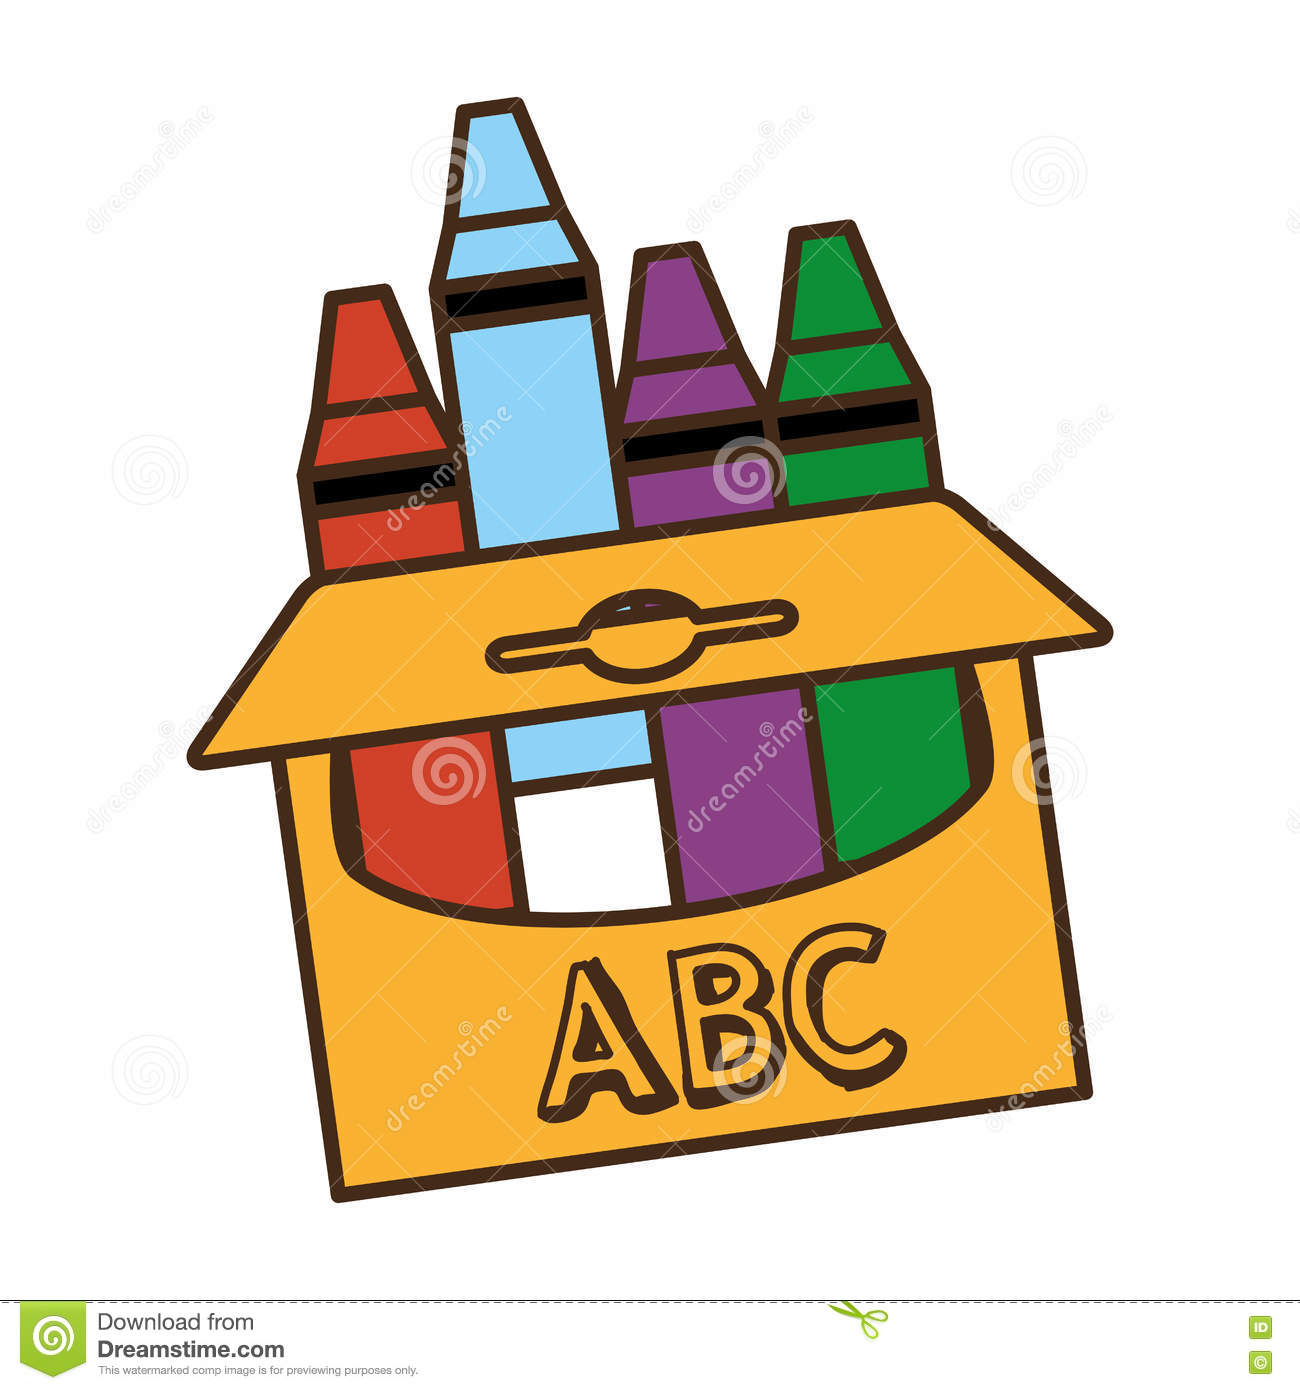 Crayons box isolated icon stock vector. Illustration of template ...